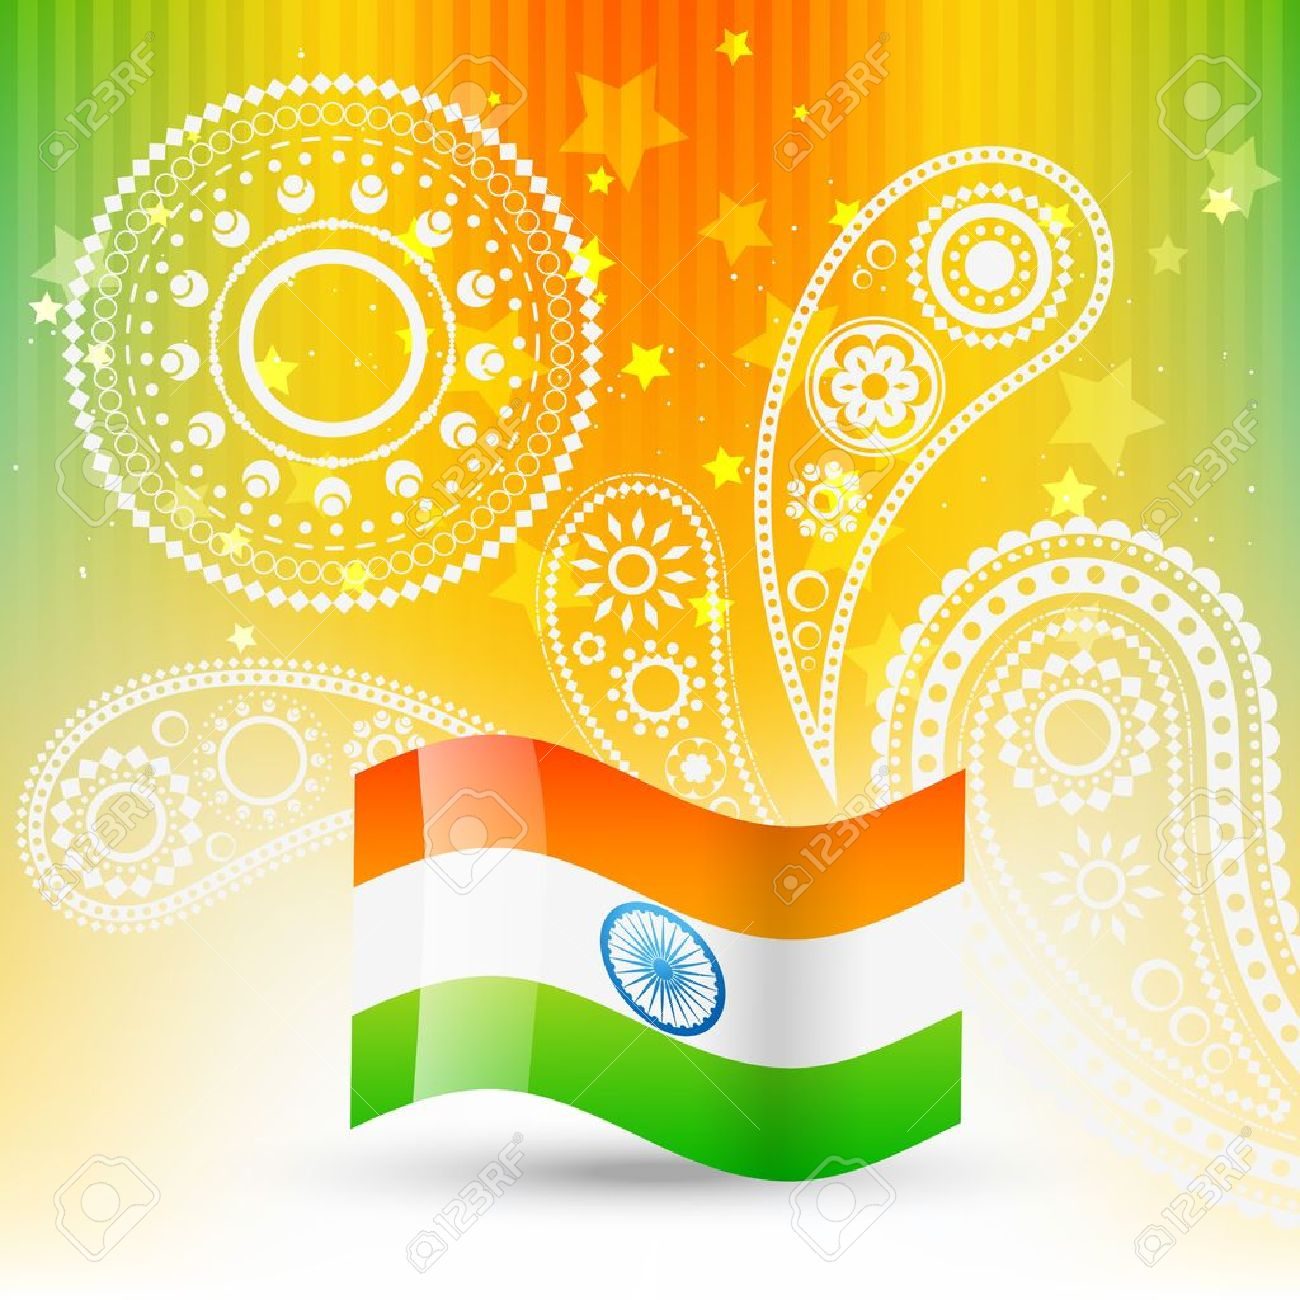 42 448 india culture cliparts stock vector and royalty free india